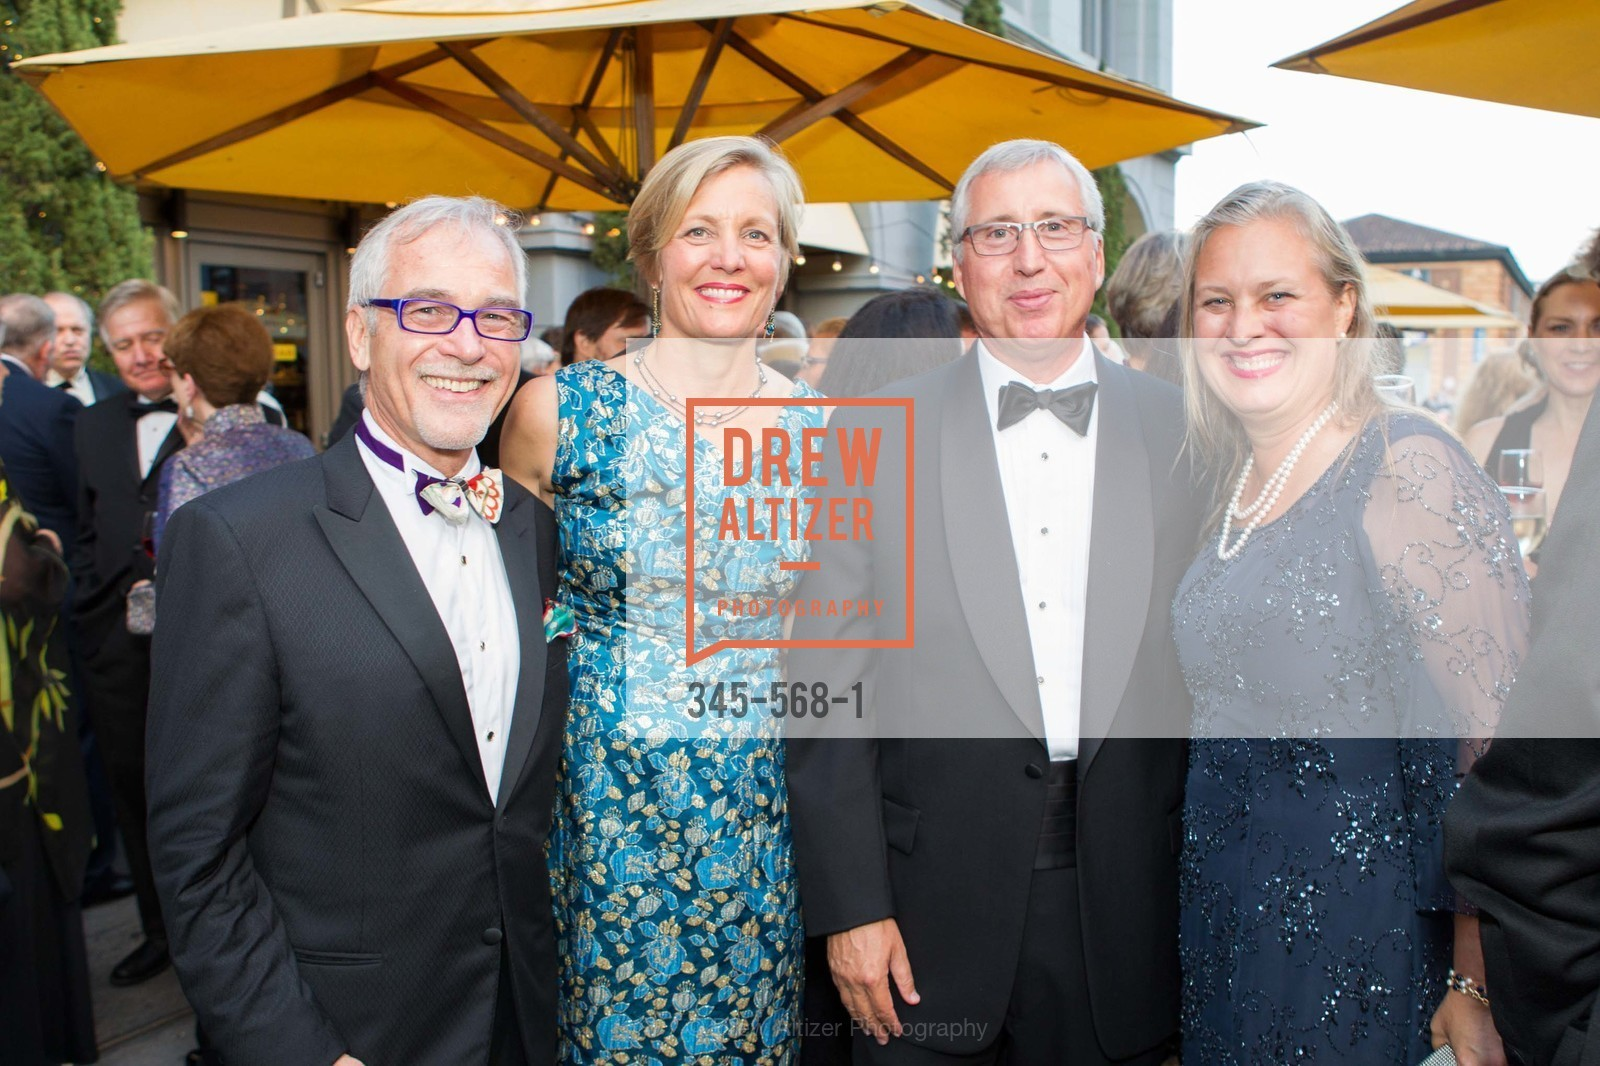 Tim Kochis, Roxanne Richards, Ted Eliot, Cybil Kauffman, SOTHEBY'S  Hosts a Private Viewing of Highlights from the Collection of MRS. PAUL MELLON, US, September 17th, 2014,Drew Altizer, Drew Altizer Photography, full-service event agency, private events, San Francisco photographer, photographer California